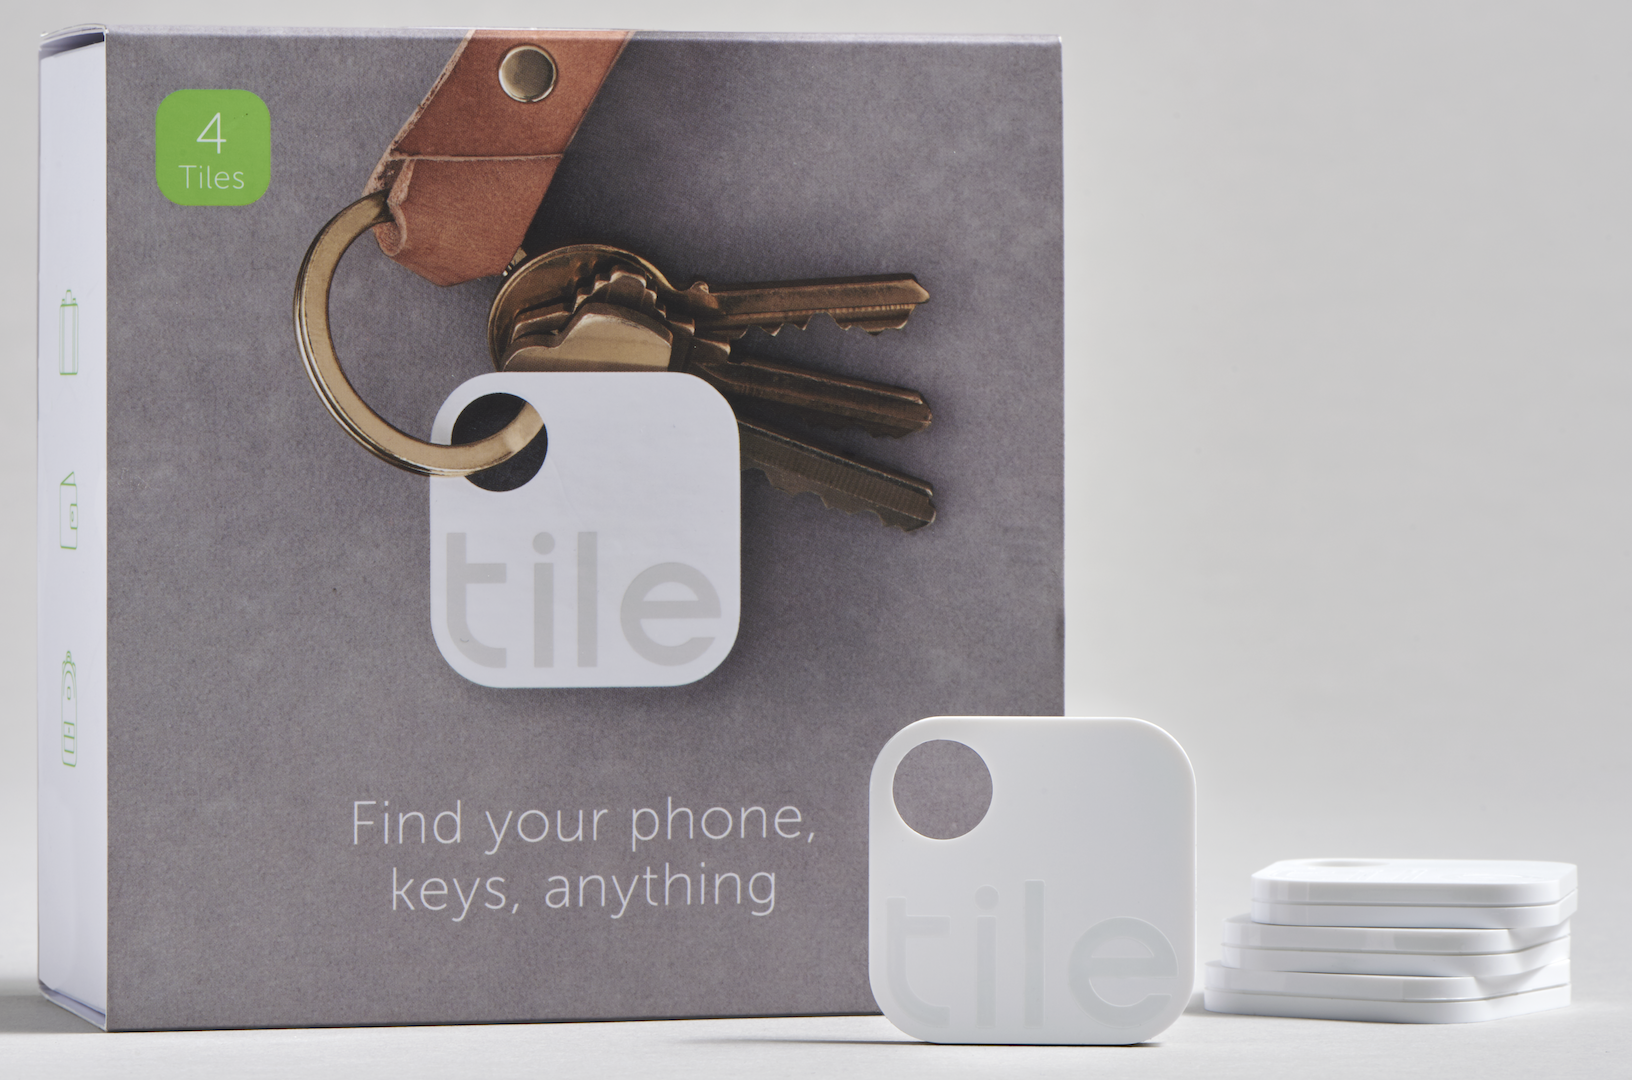 Tile : Never Lose Your Keys Again